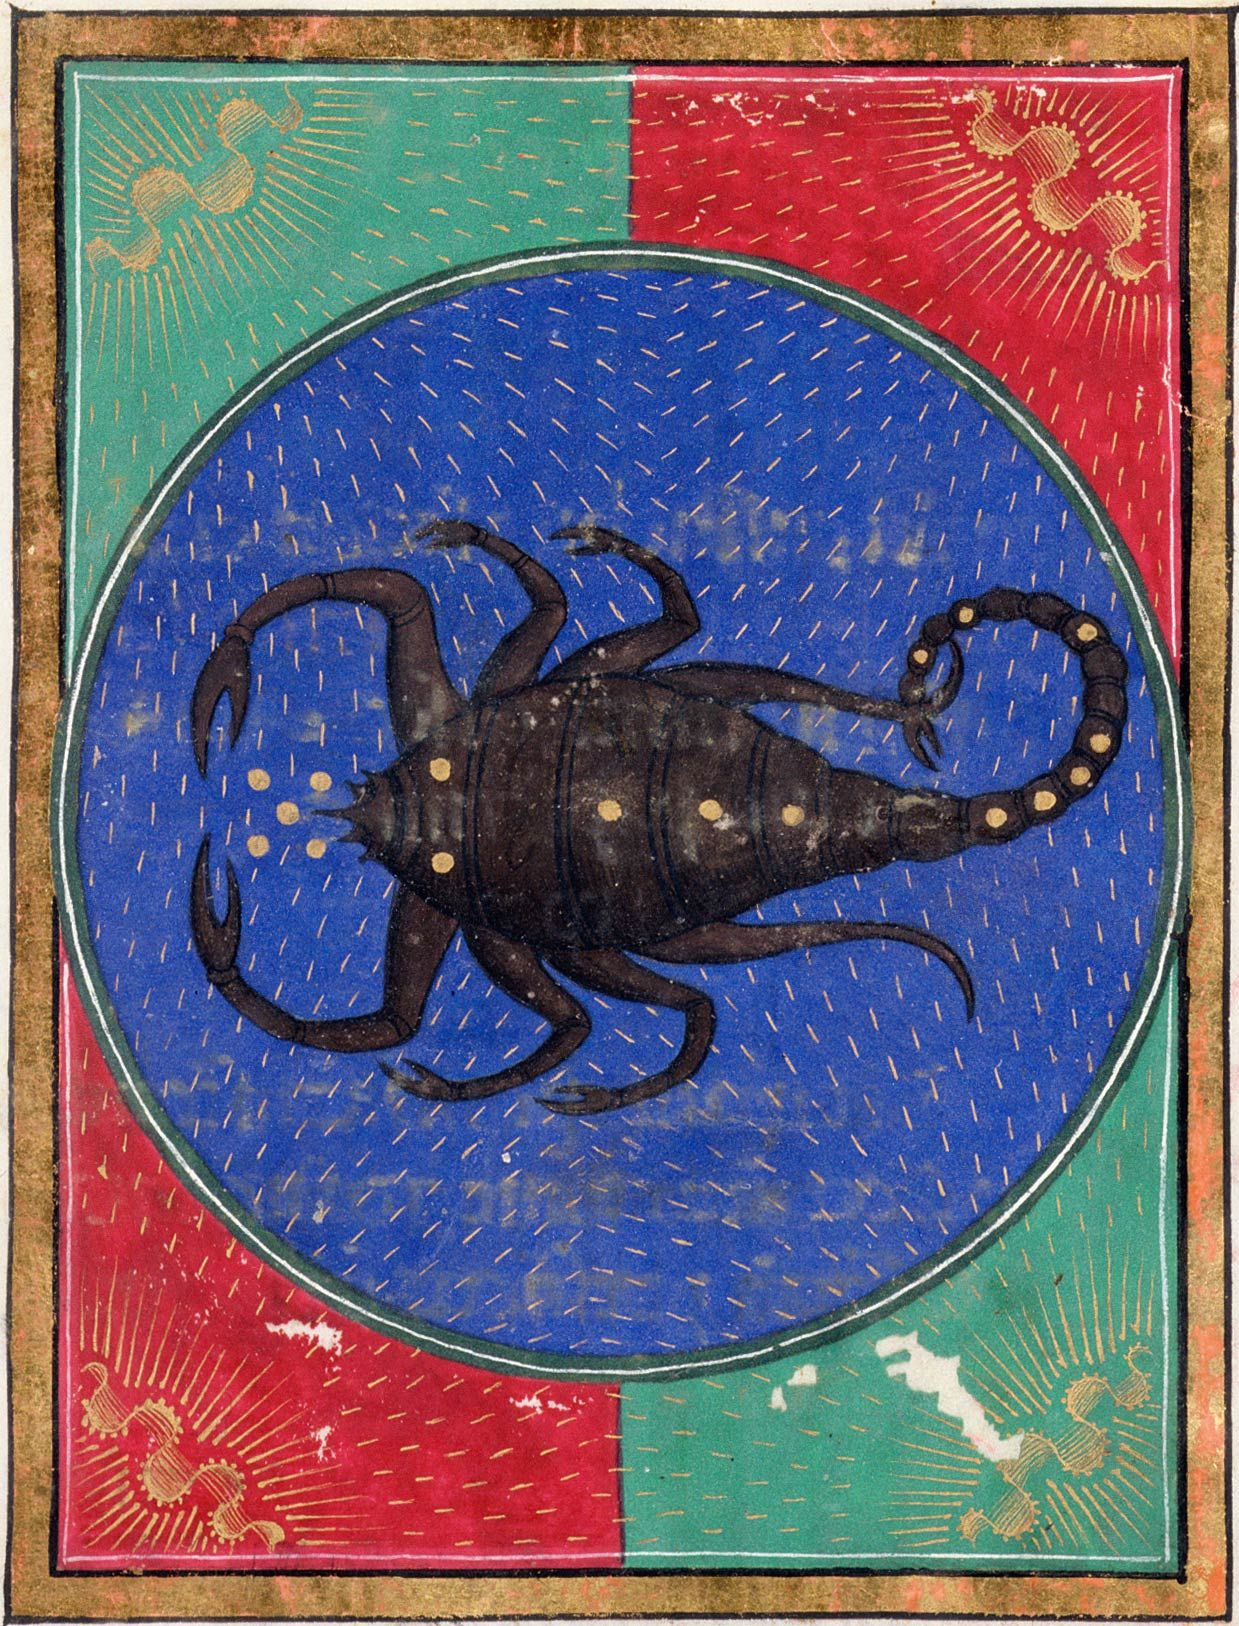 Scorpio | Book of Hours | ca. 1473 | The Morgan Library & Museum